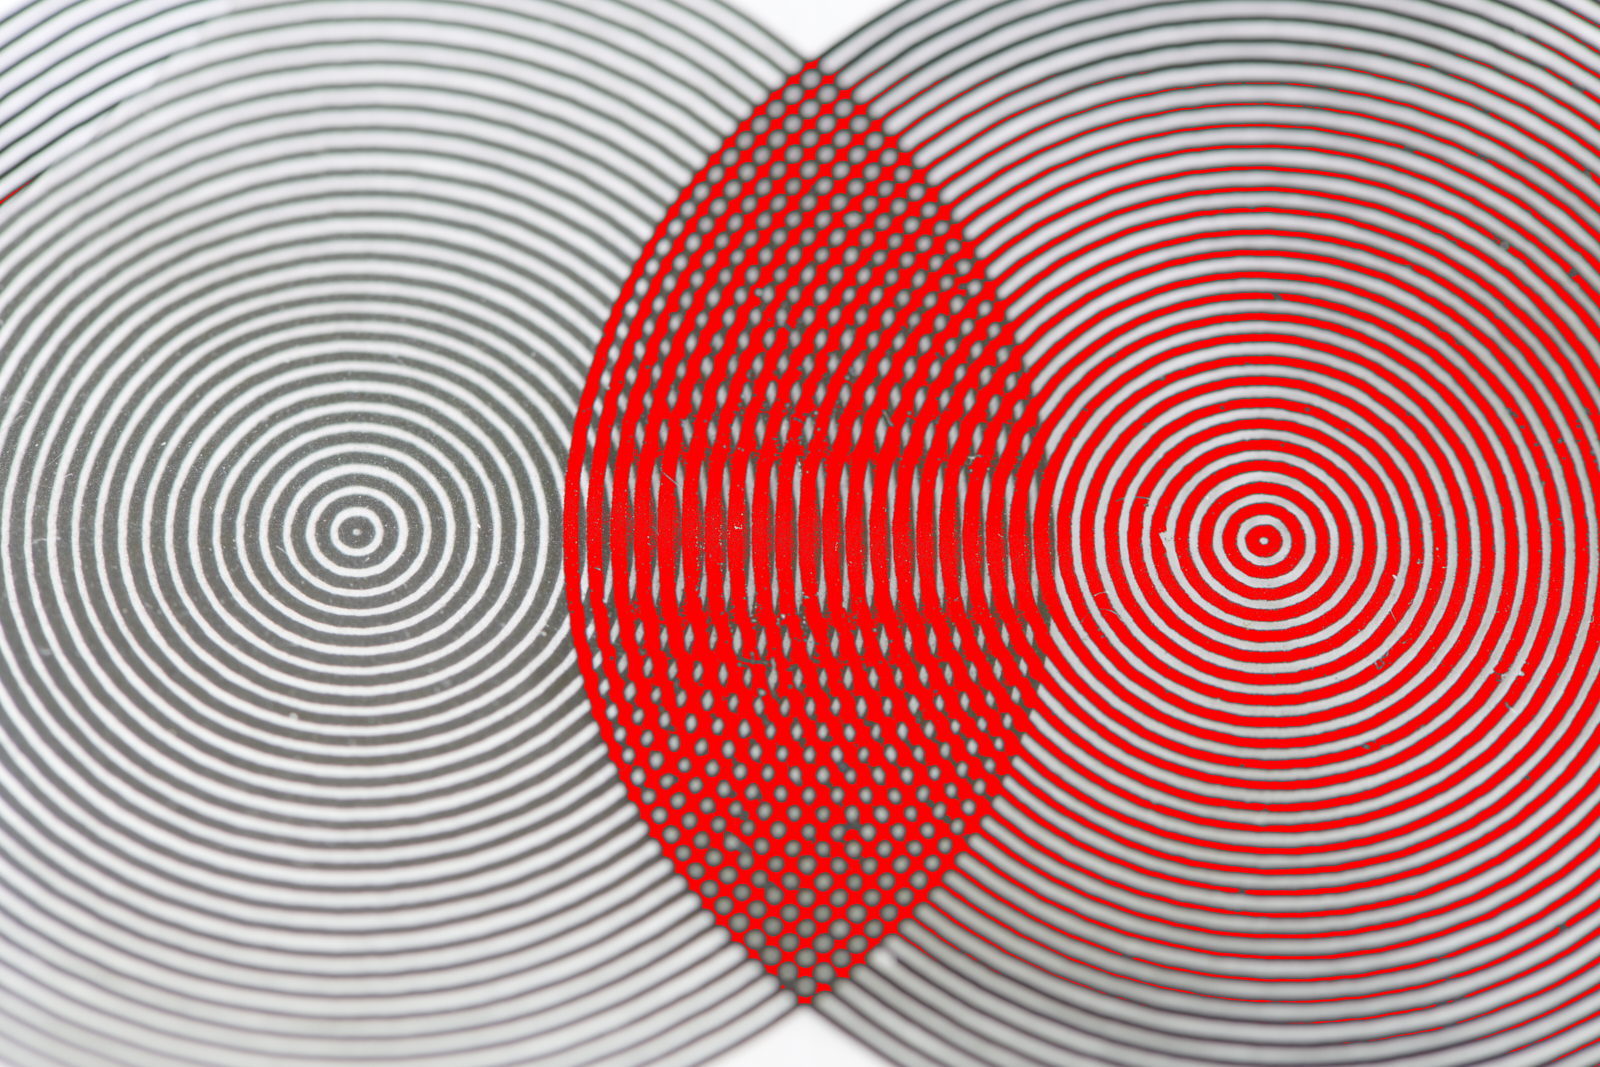 optical illusion in red